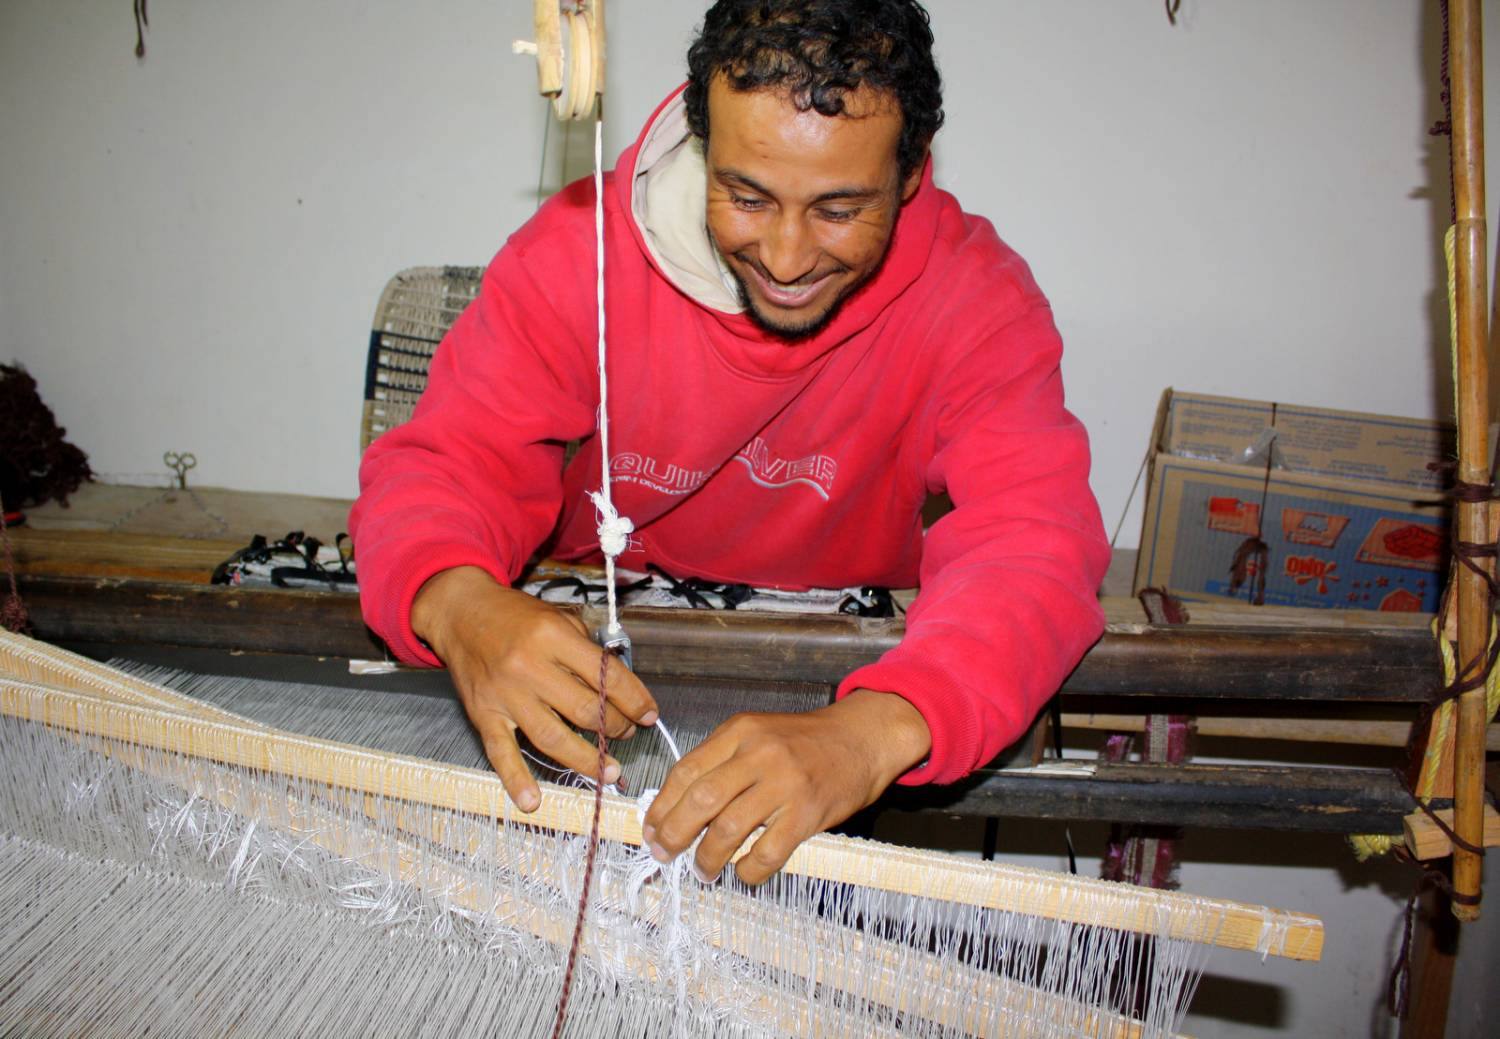 Marrakech Musthaves supports artisans